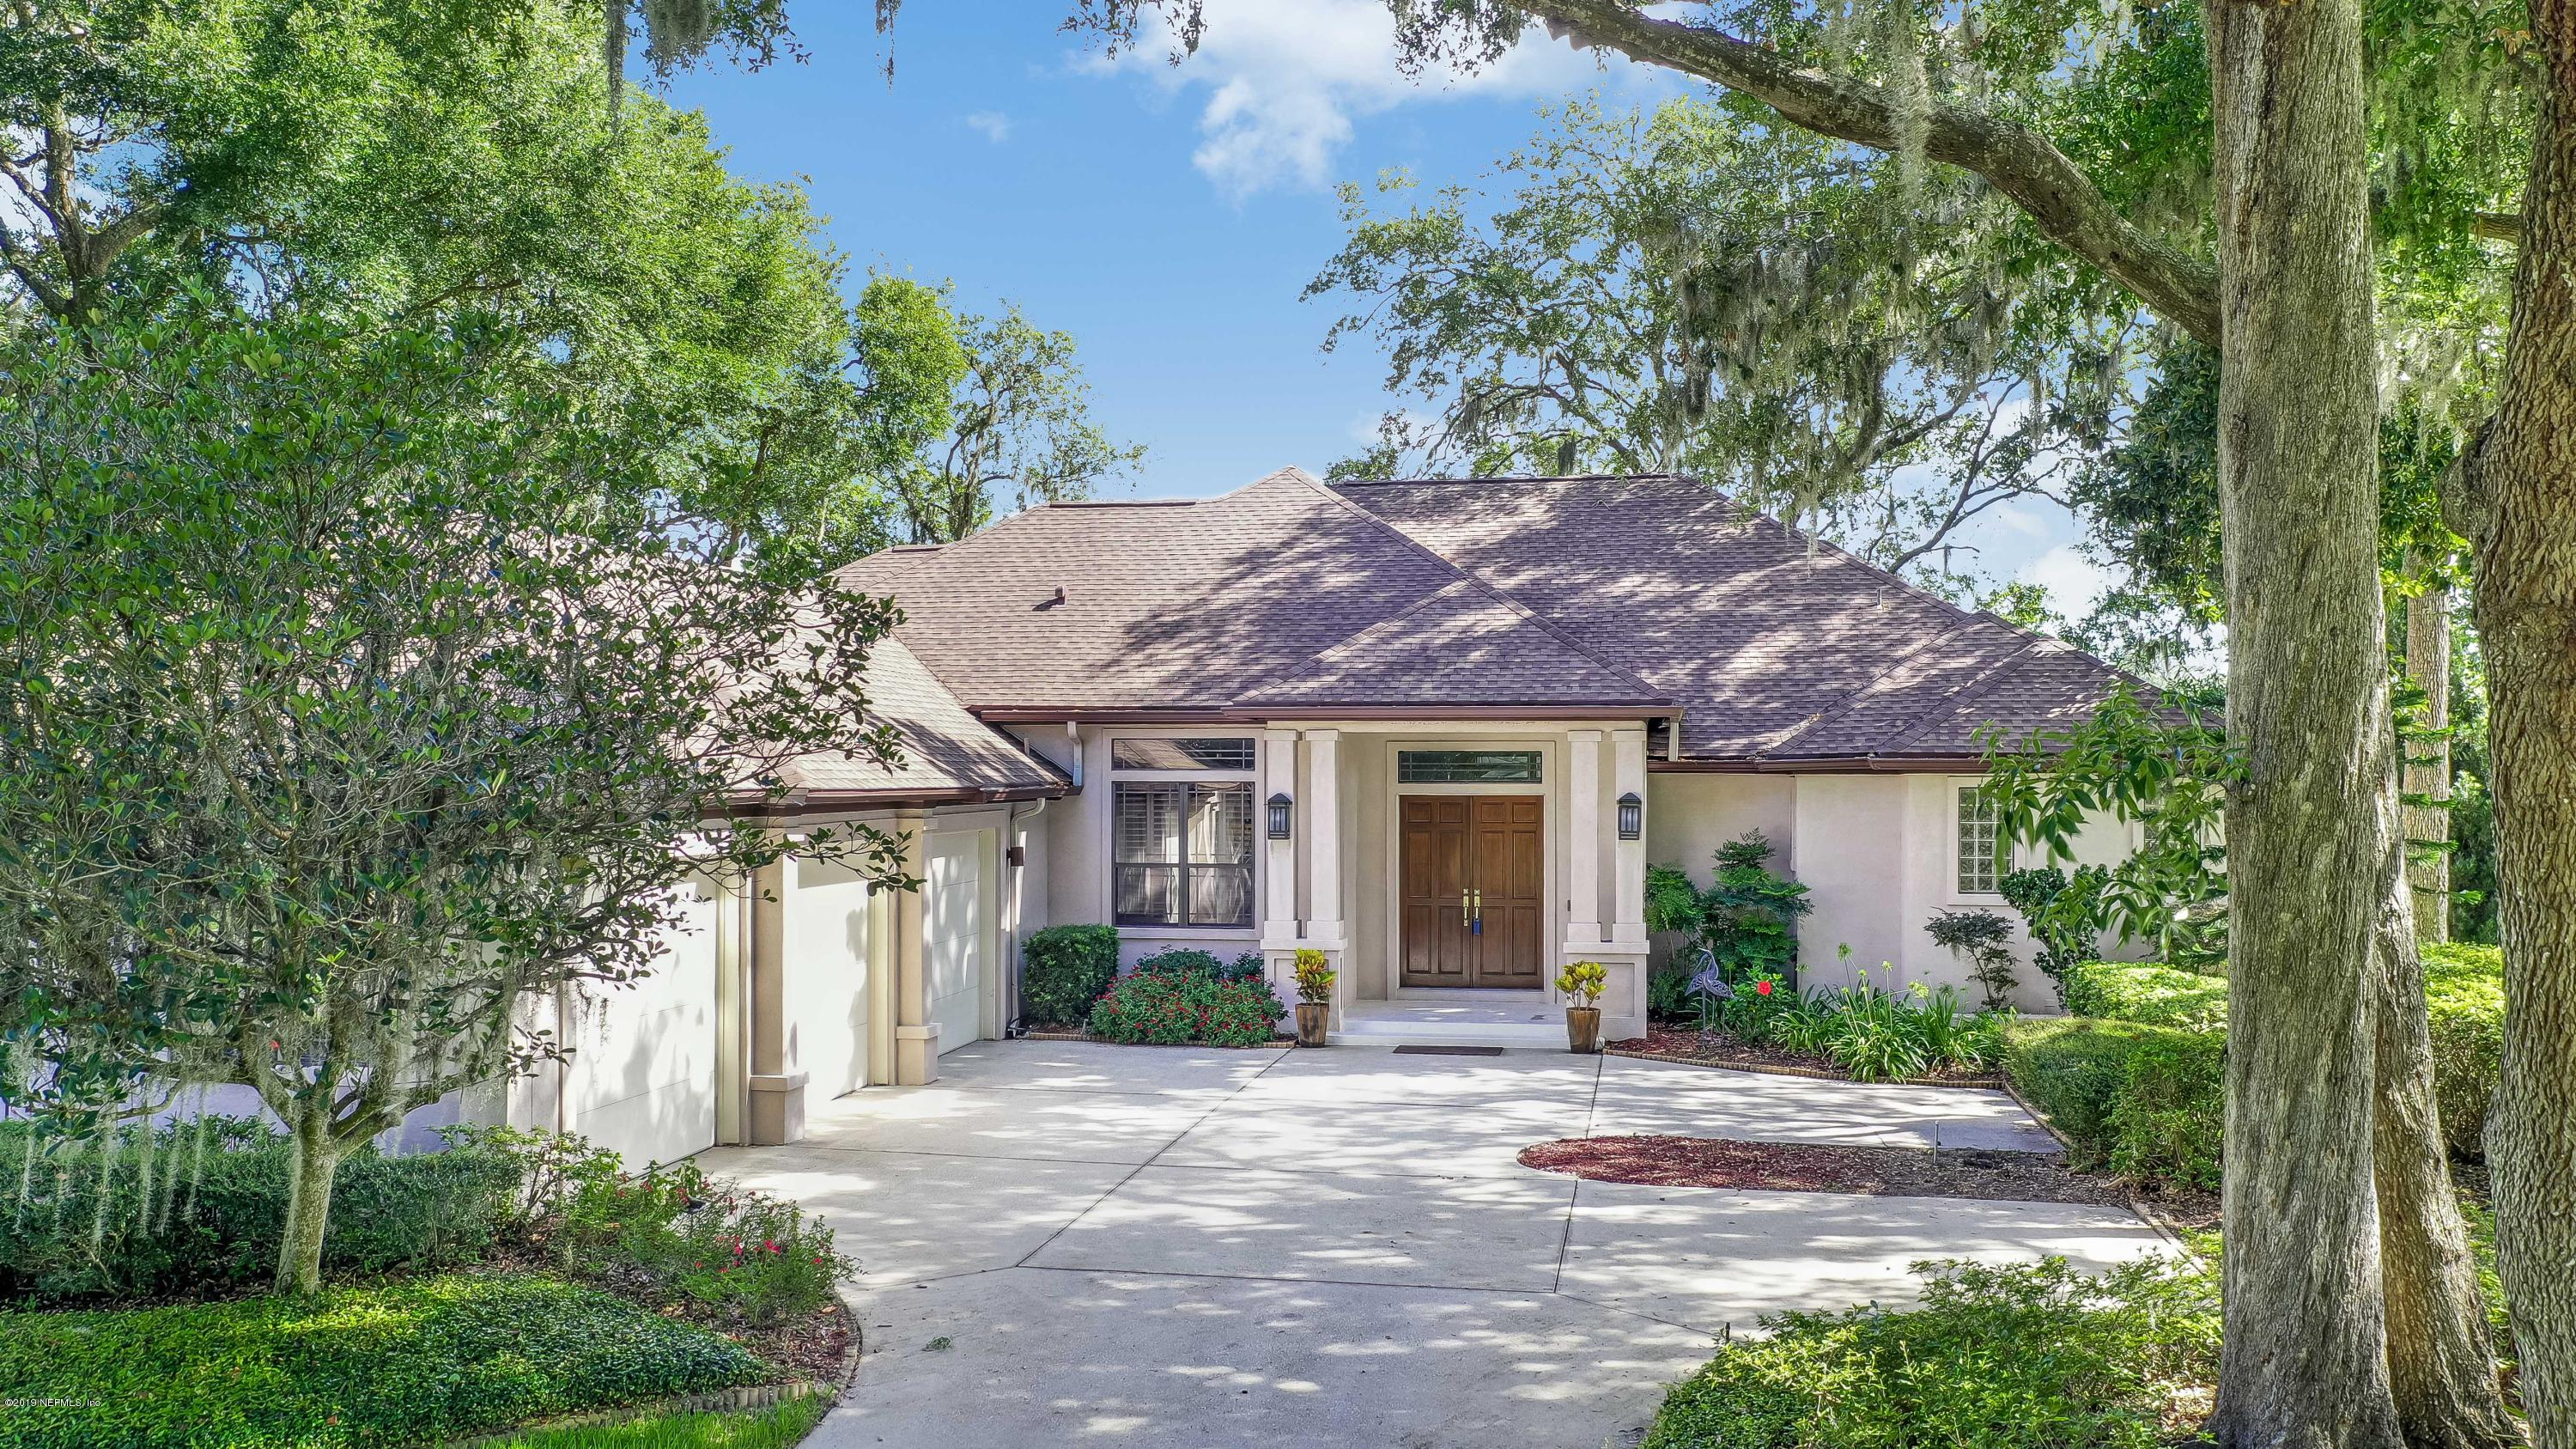 13825 FIDDLERS POINT, JACKSONVILLE, FLORIDA 32225, 3 Bedrooms Bedrooms, ,2 BathroomsBathrooms,Residential - single family,For sale,FIDDLERS POINT,1008567